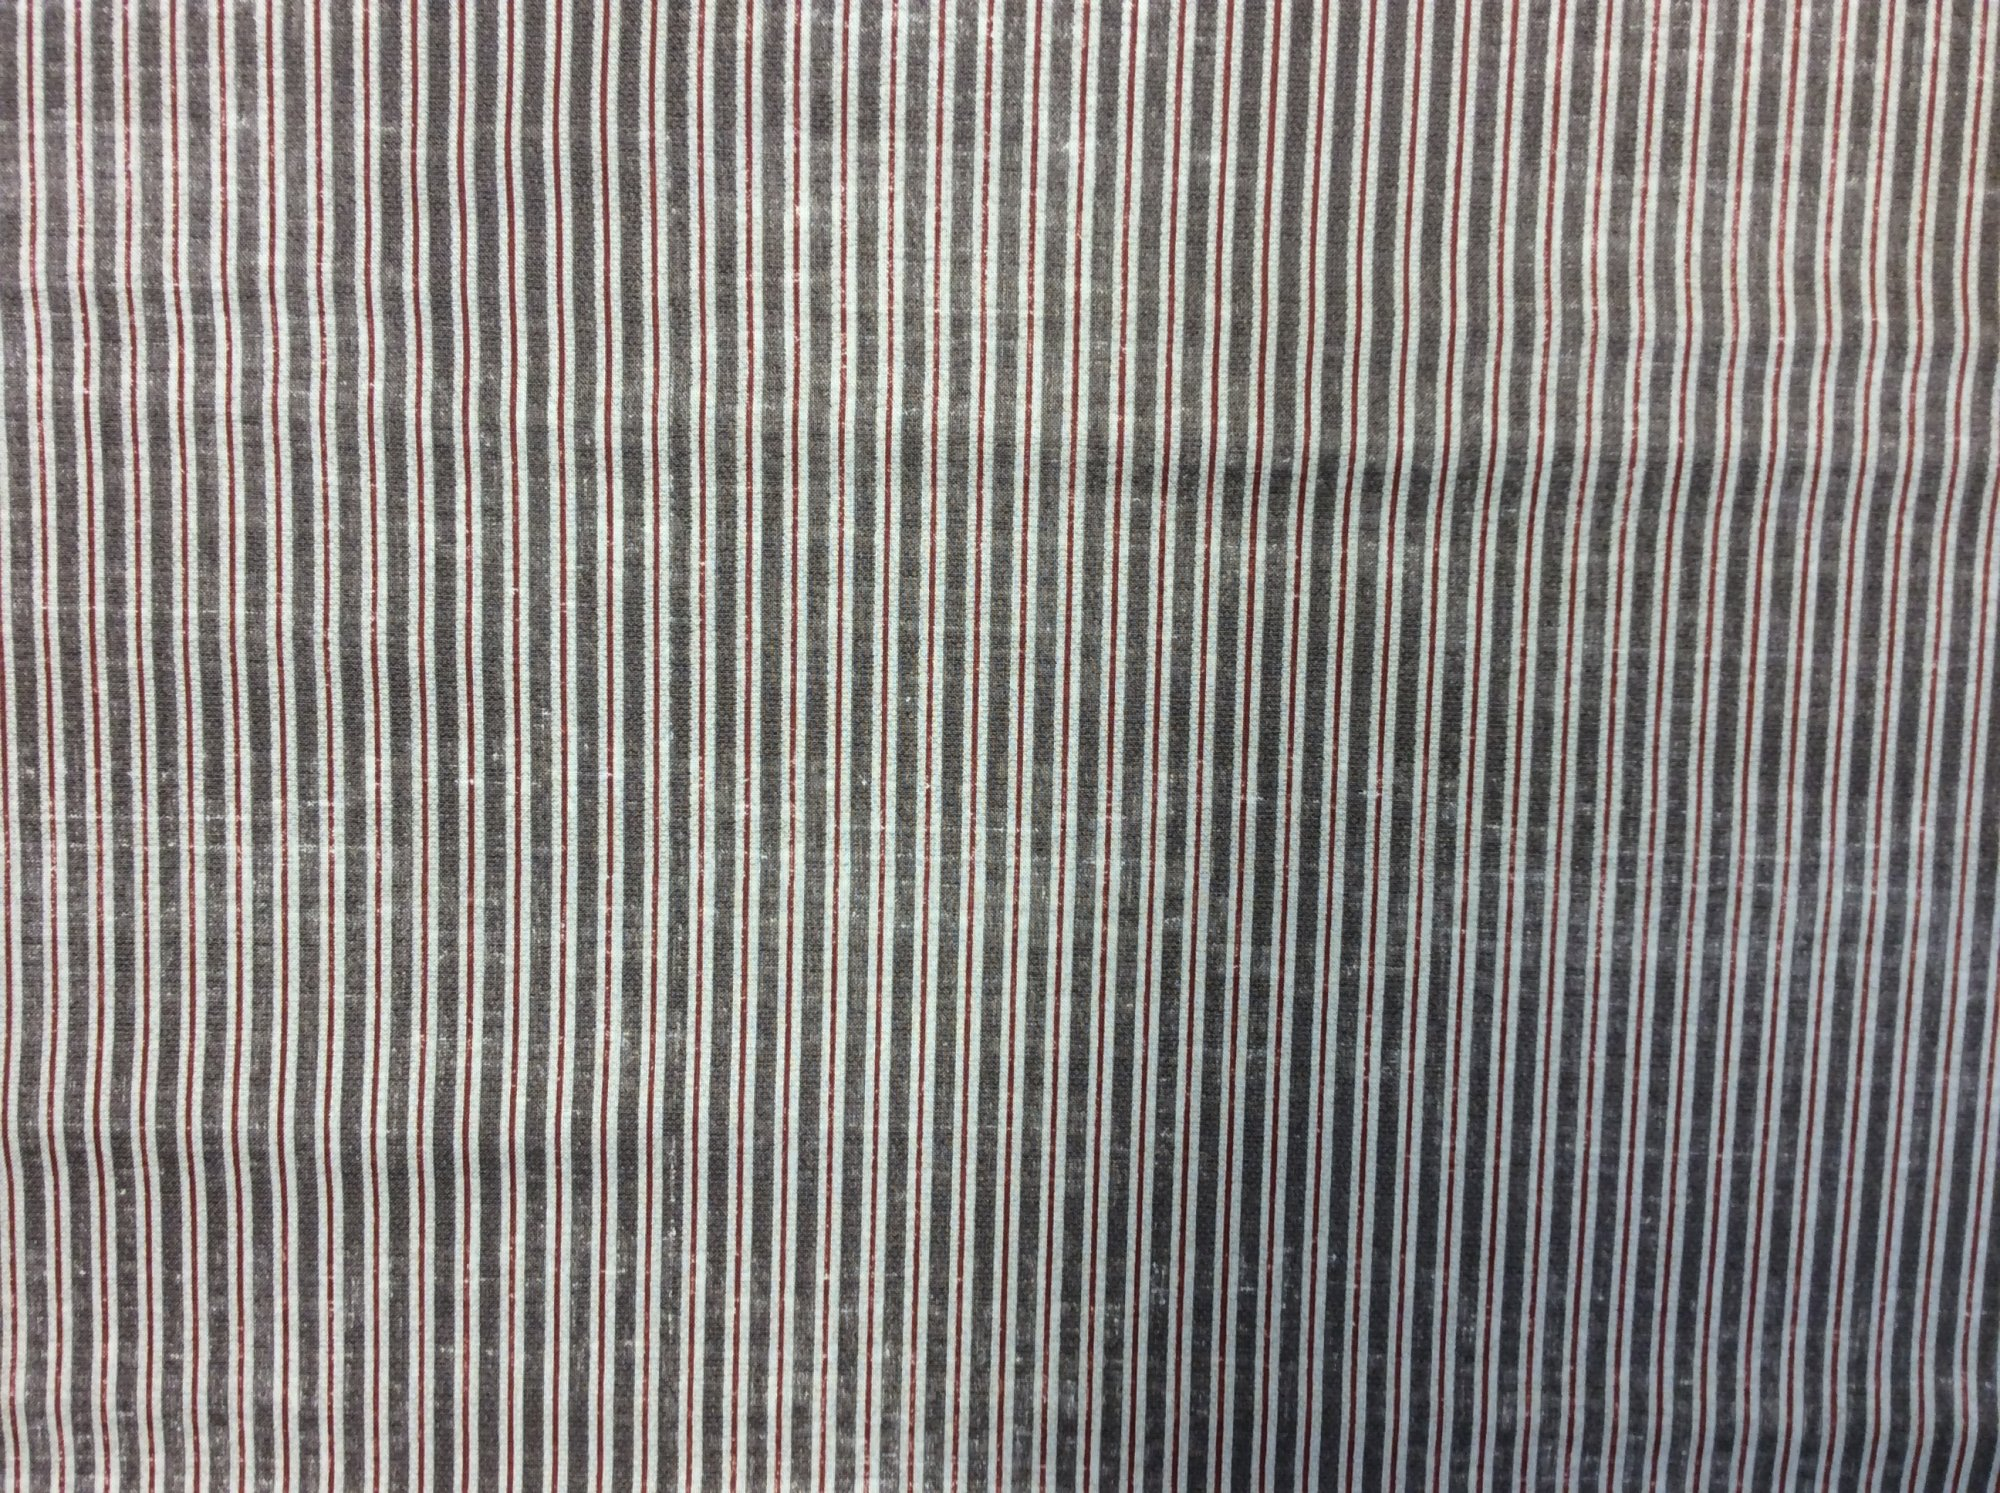 NM12 Gentlemens Menswear Distressed Brown and Burgundy Stripe Cotton Quilting Fabric